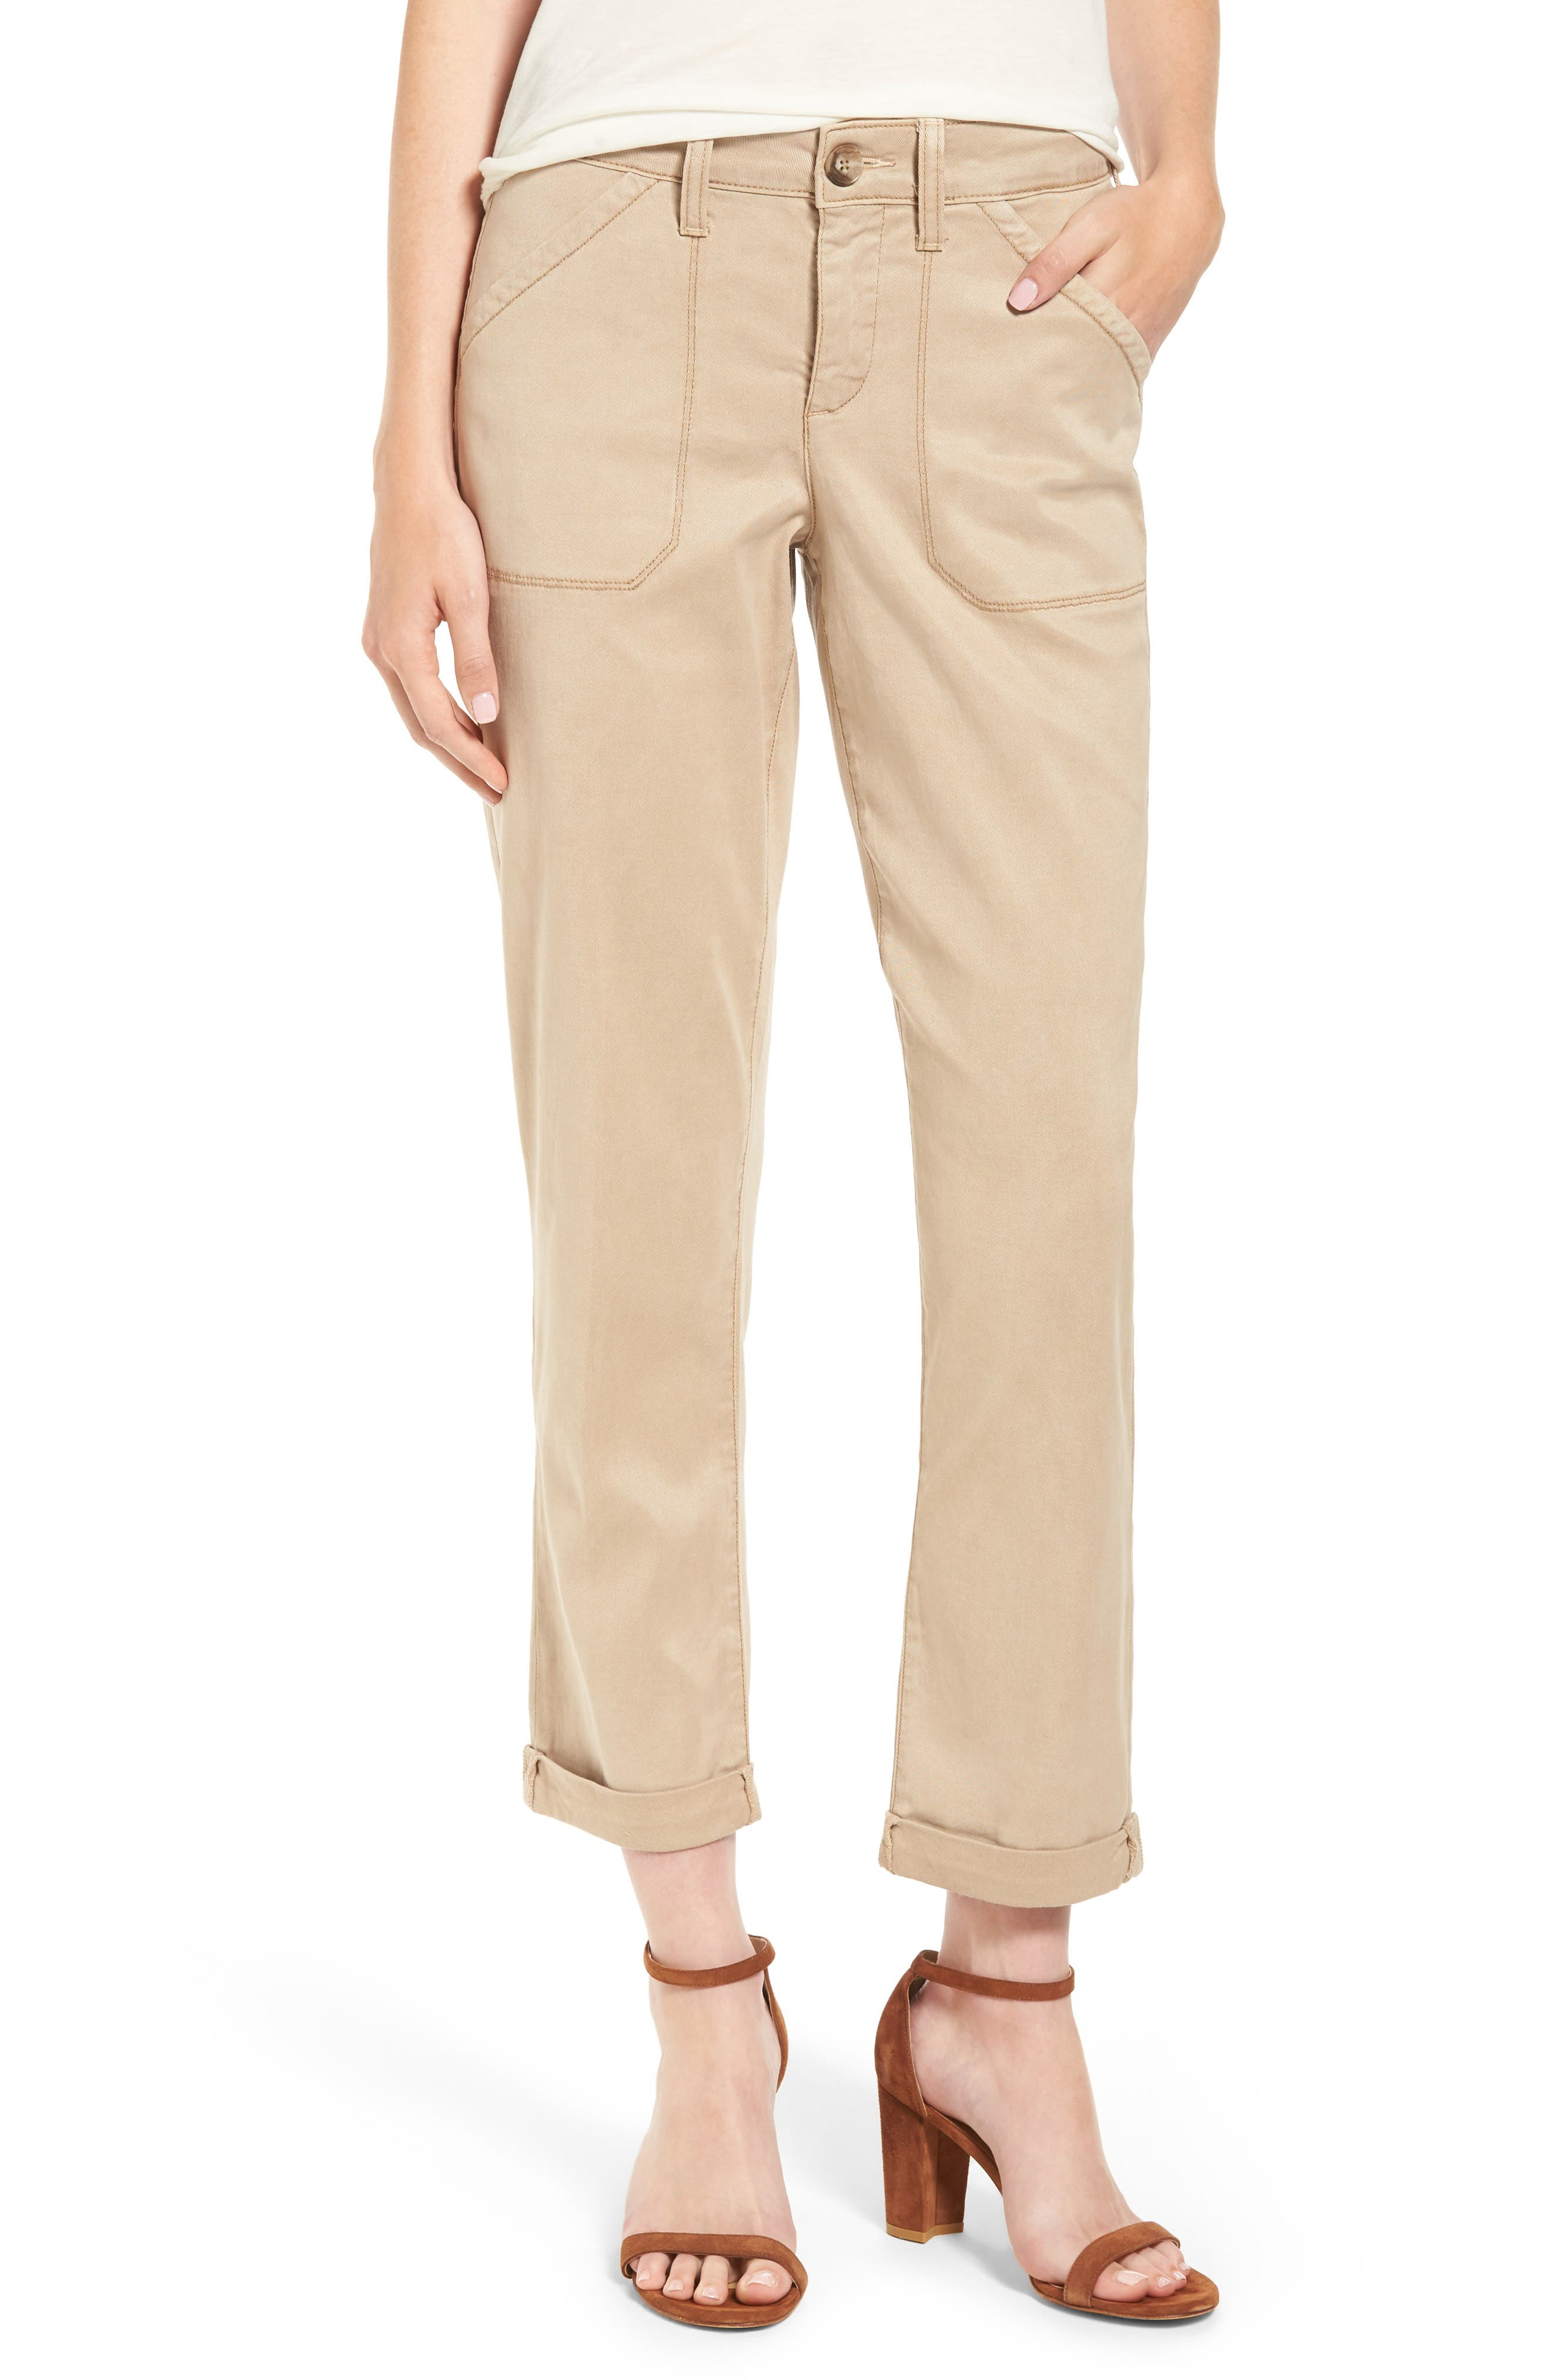 Alternate Image 1 Selected - NYDJ Reese Relaxed Chino Pants